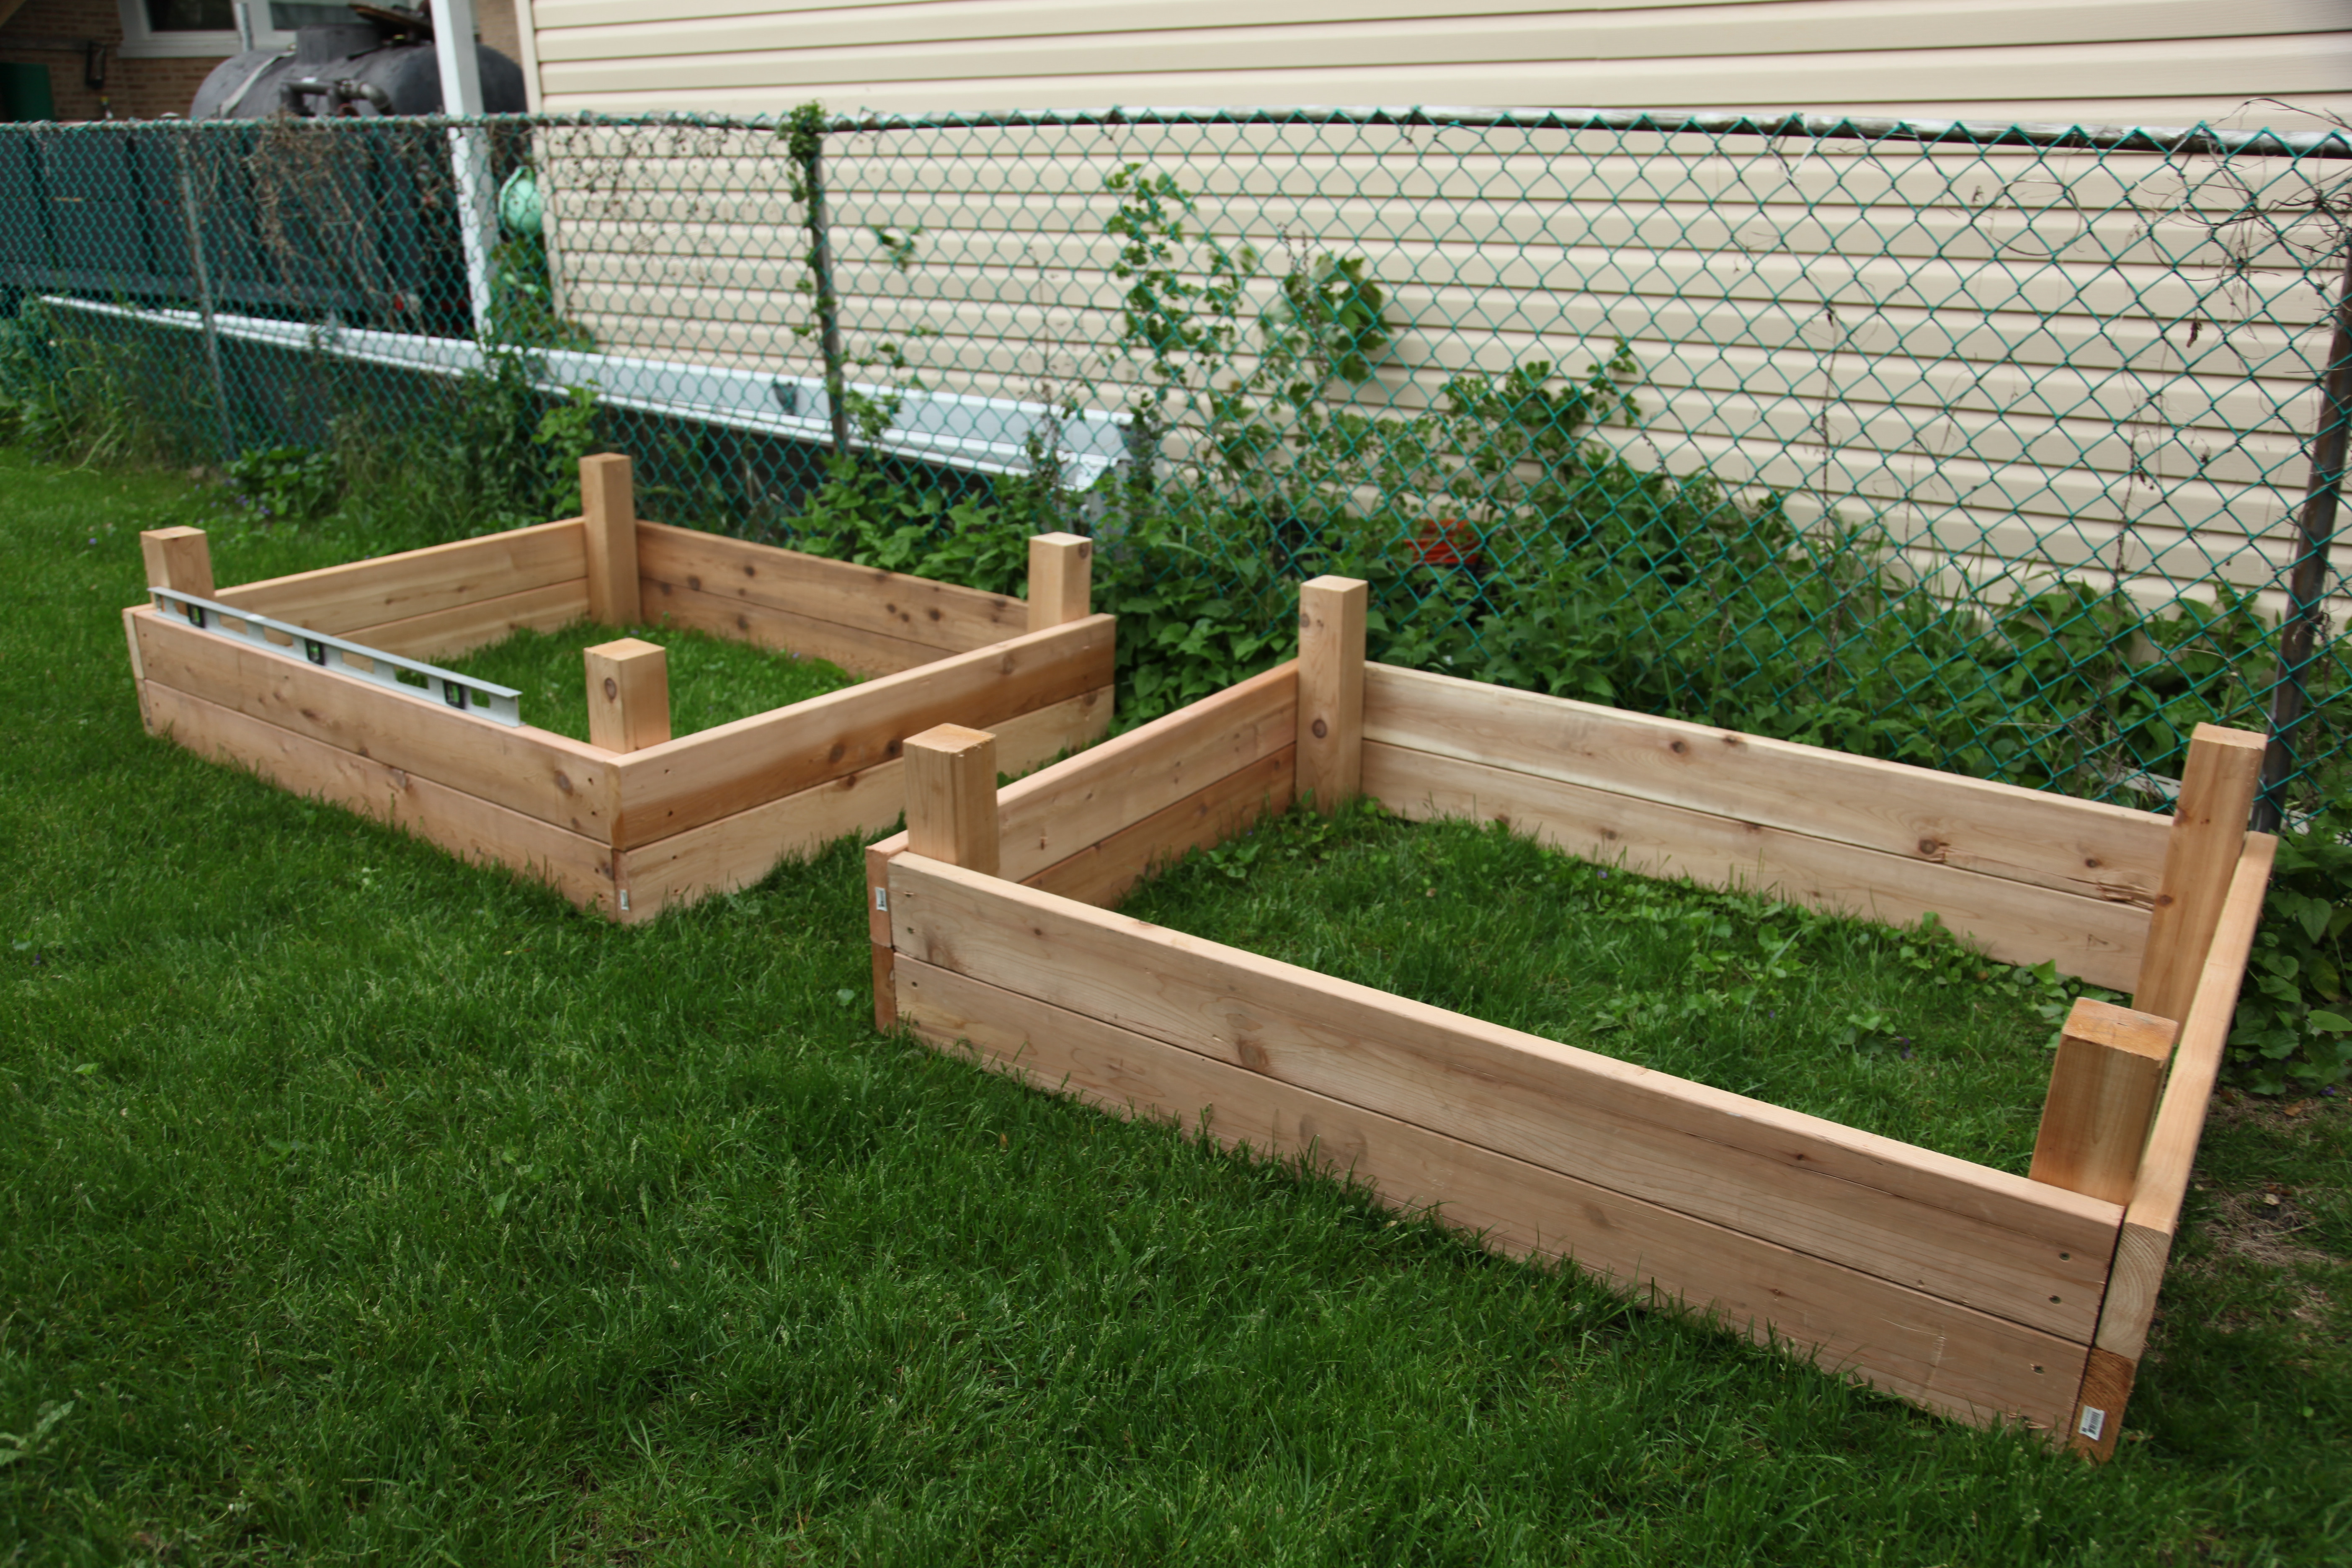 Best ideas about DIY Raised Beds Garden . Save or Pin DIY Raised Garden Beds Now.